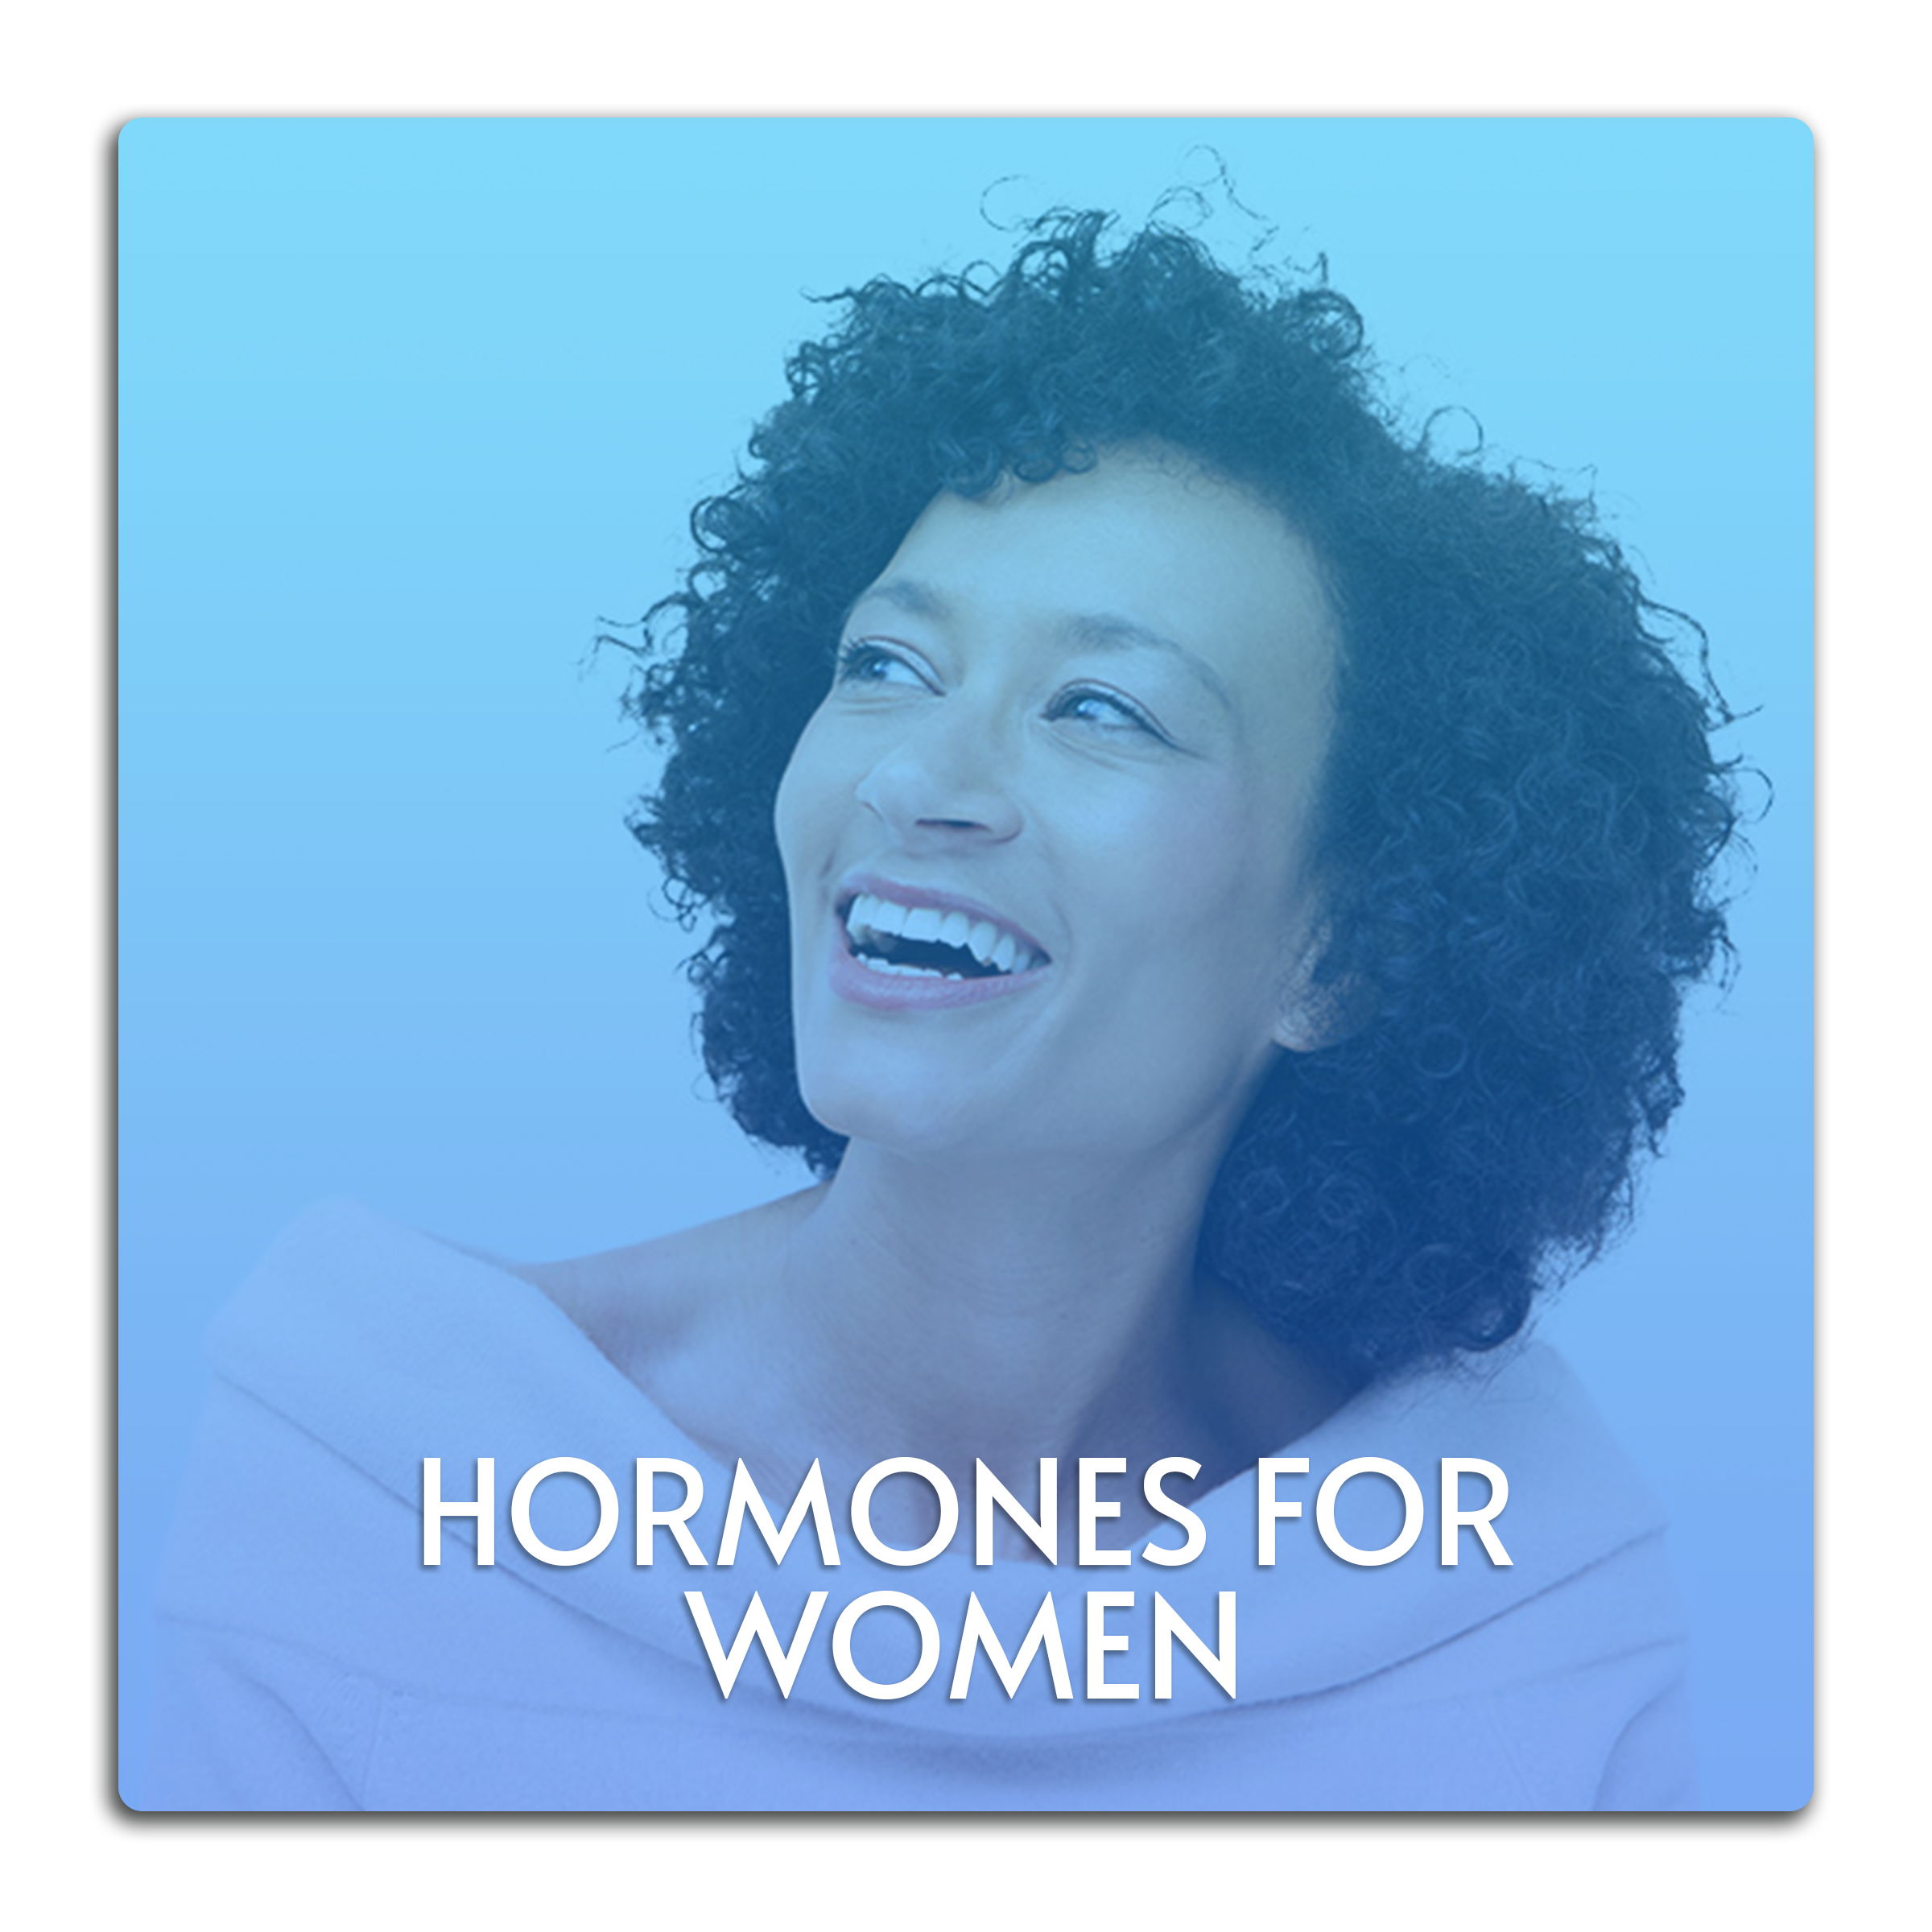 This image is a button linked to the Hormones for Women page